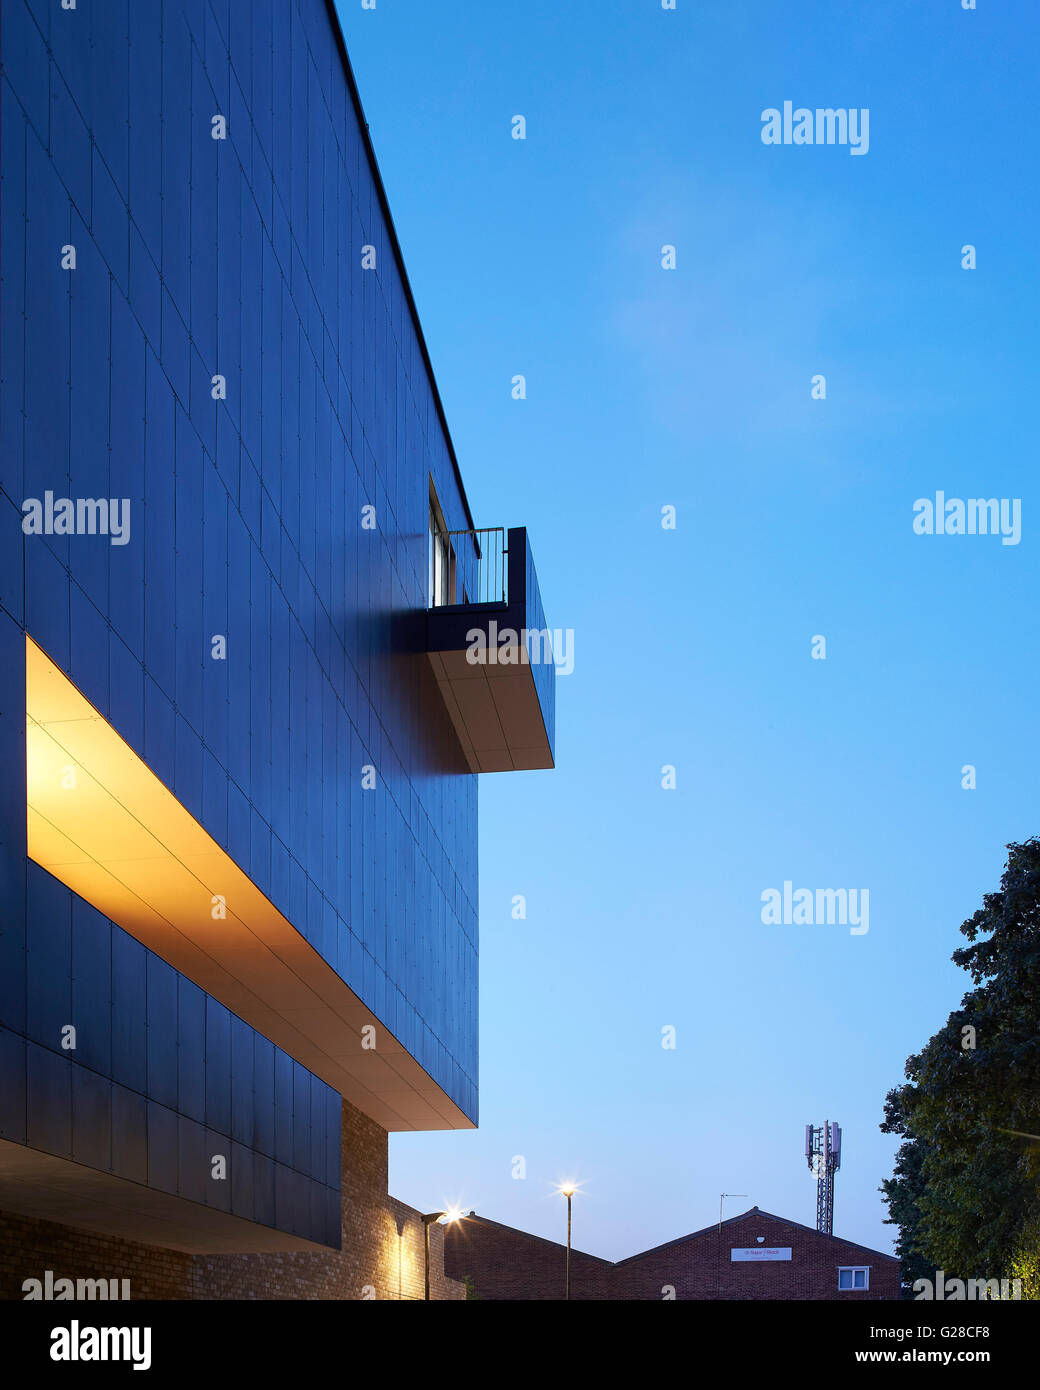 Building facade with singular balcony at dusk. Alpine Place, Brent, London, United Kingdom. Architect: Ayre Chamberlain - Stock Image